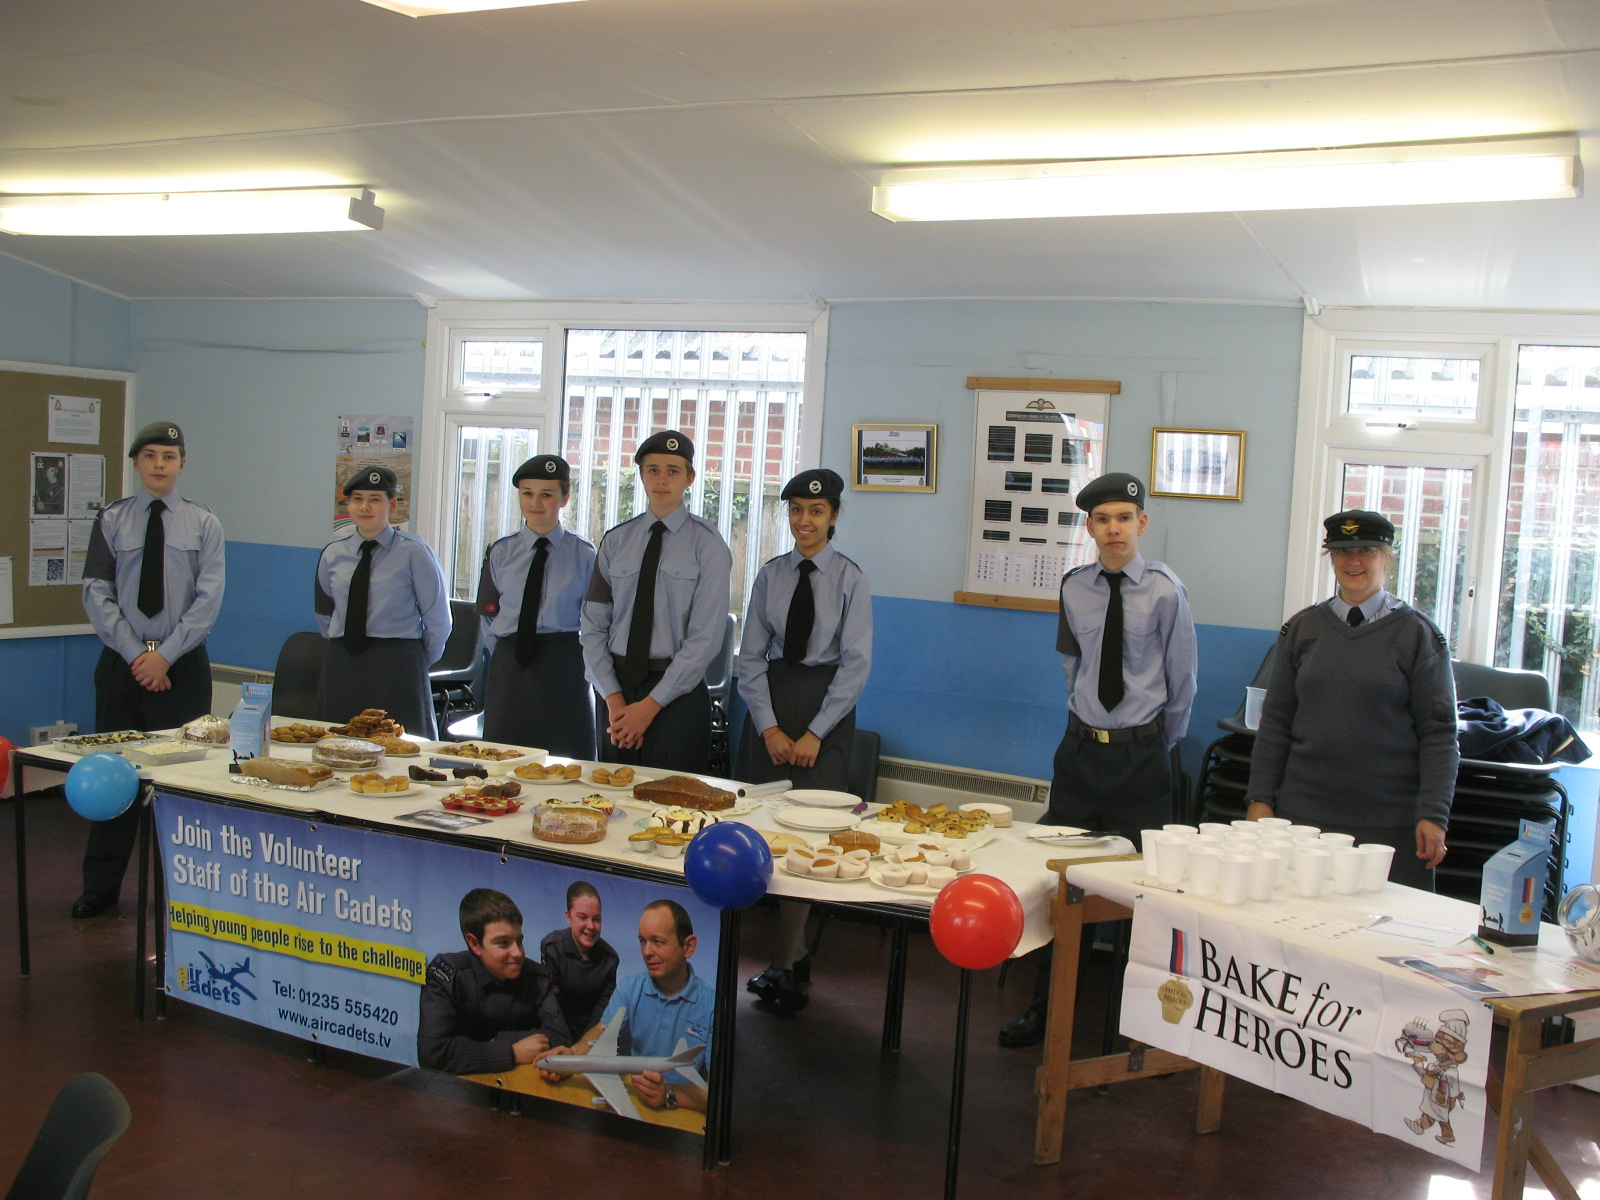 Help for Heroes Bake Sale